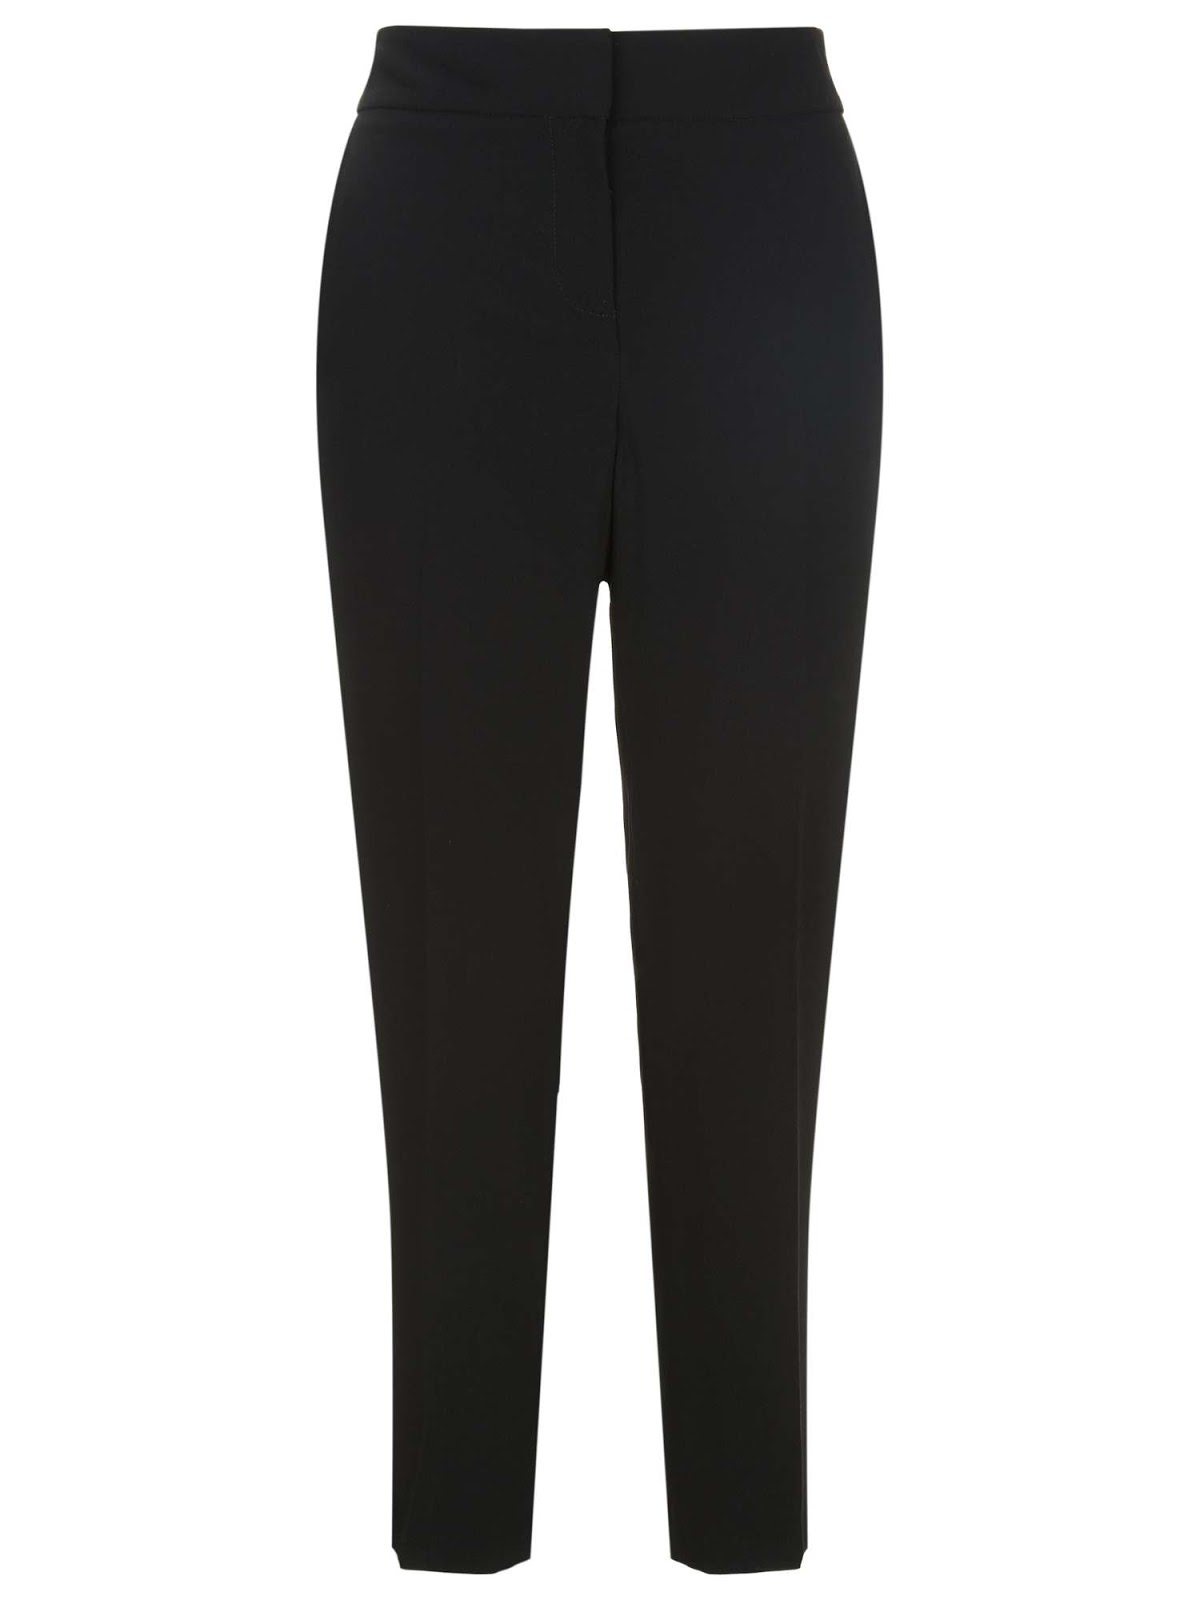 Fenn Wright Manson Darling Trousers